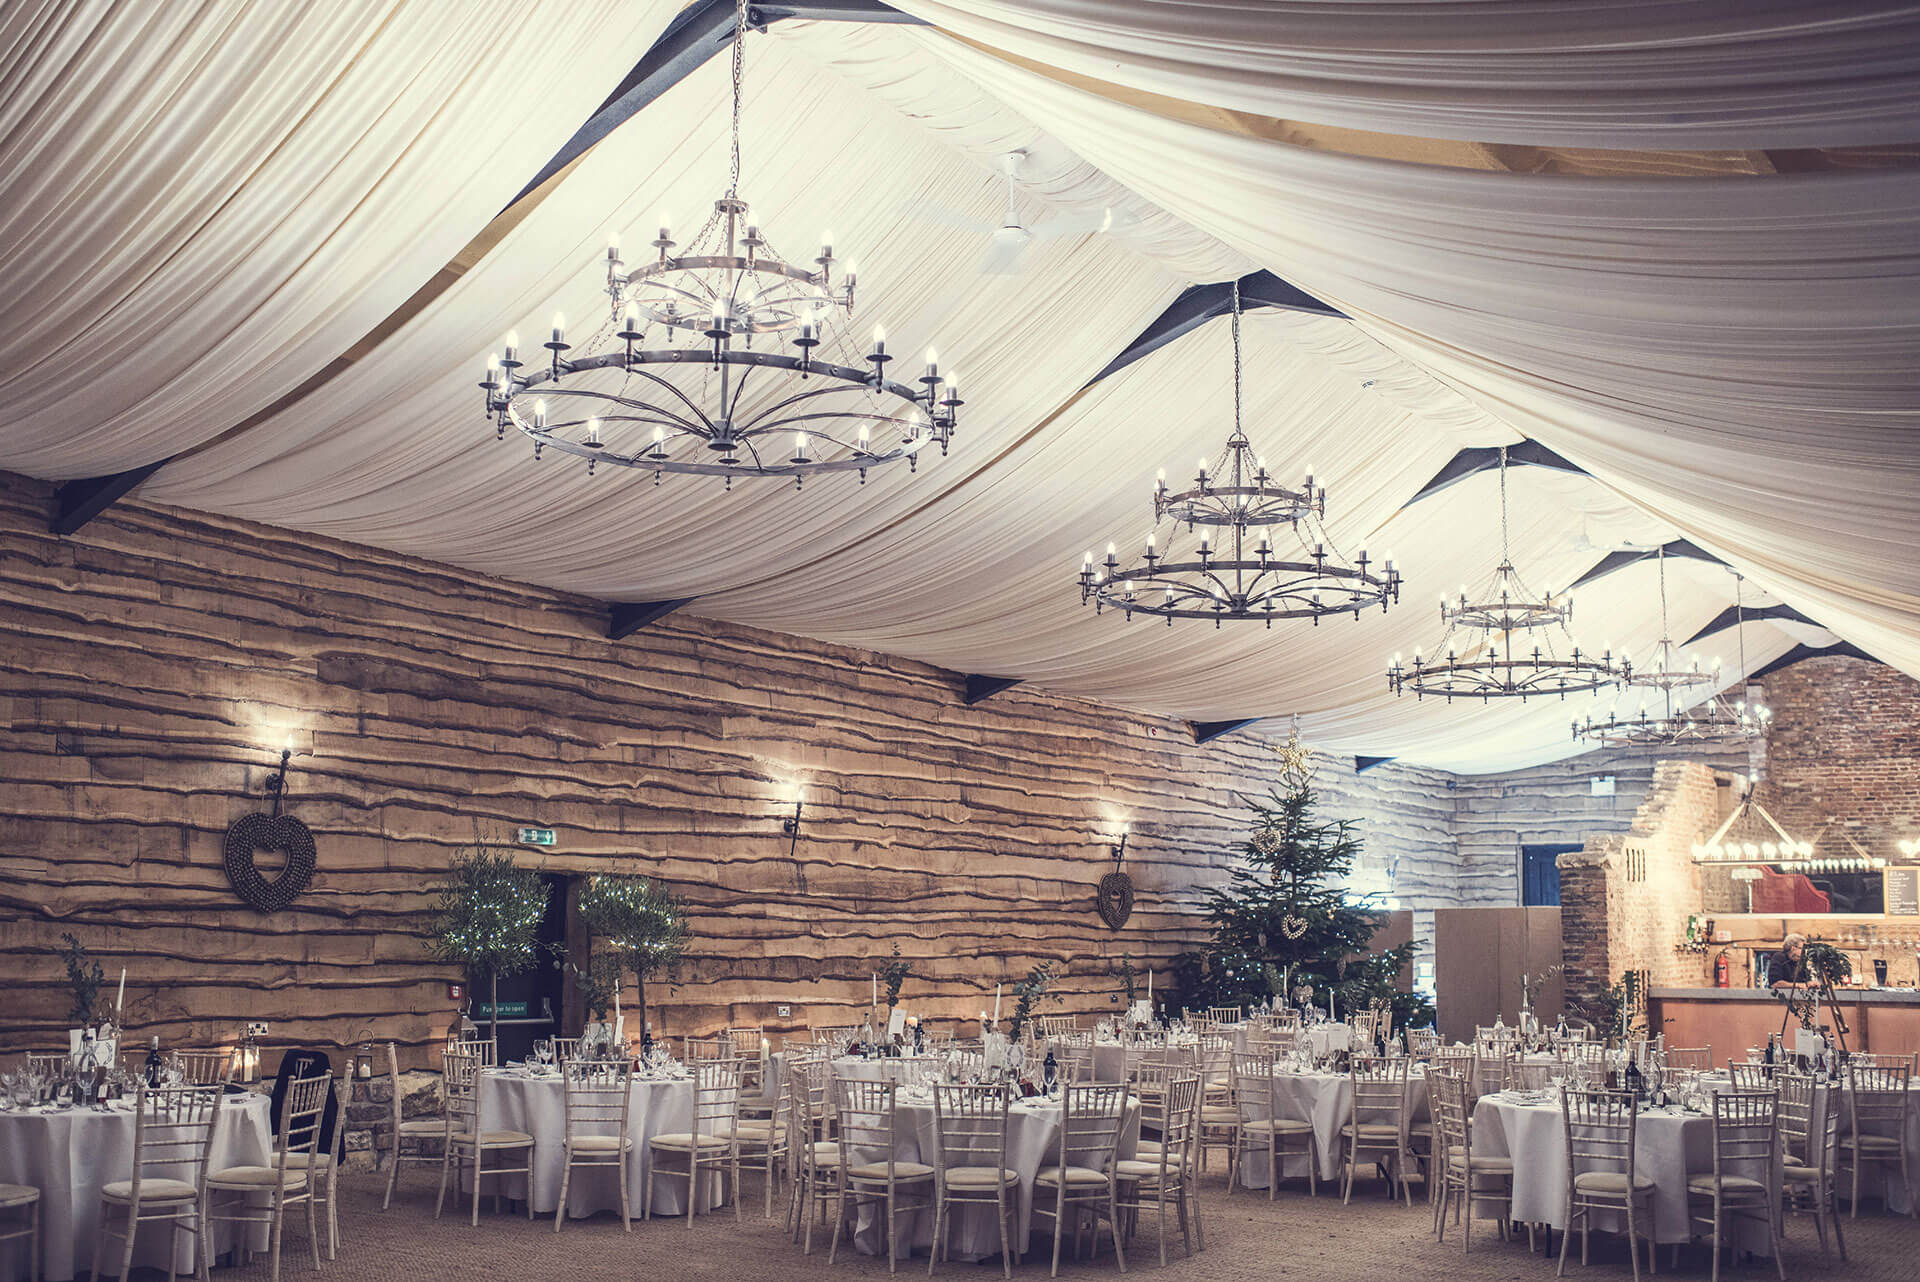 "The beautiful barn set up for Sarah & Matt's special day. Photography courtesy of Ben Robinson <a href=""http://www.thomasthomasphotography.co.uk/"" target=""_blank"">http://www.thomasthomasphotography.co.uk/ </a>"